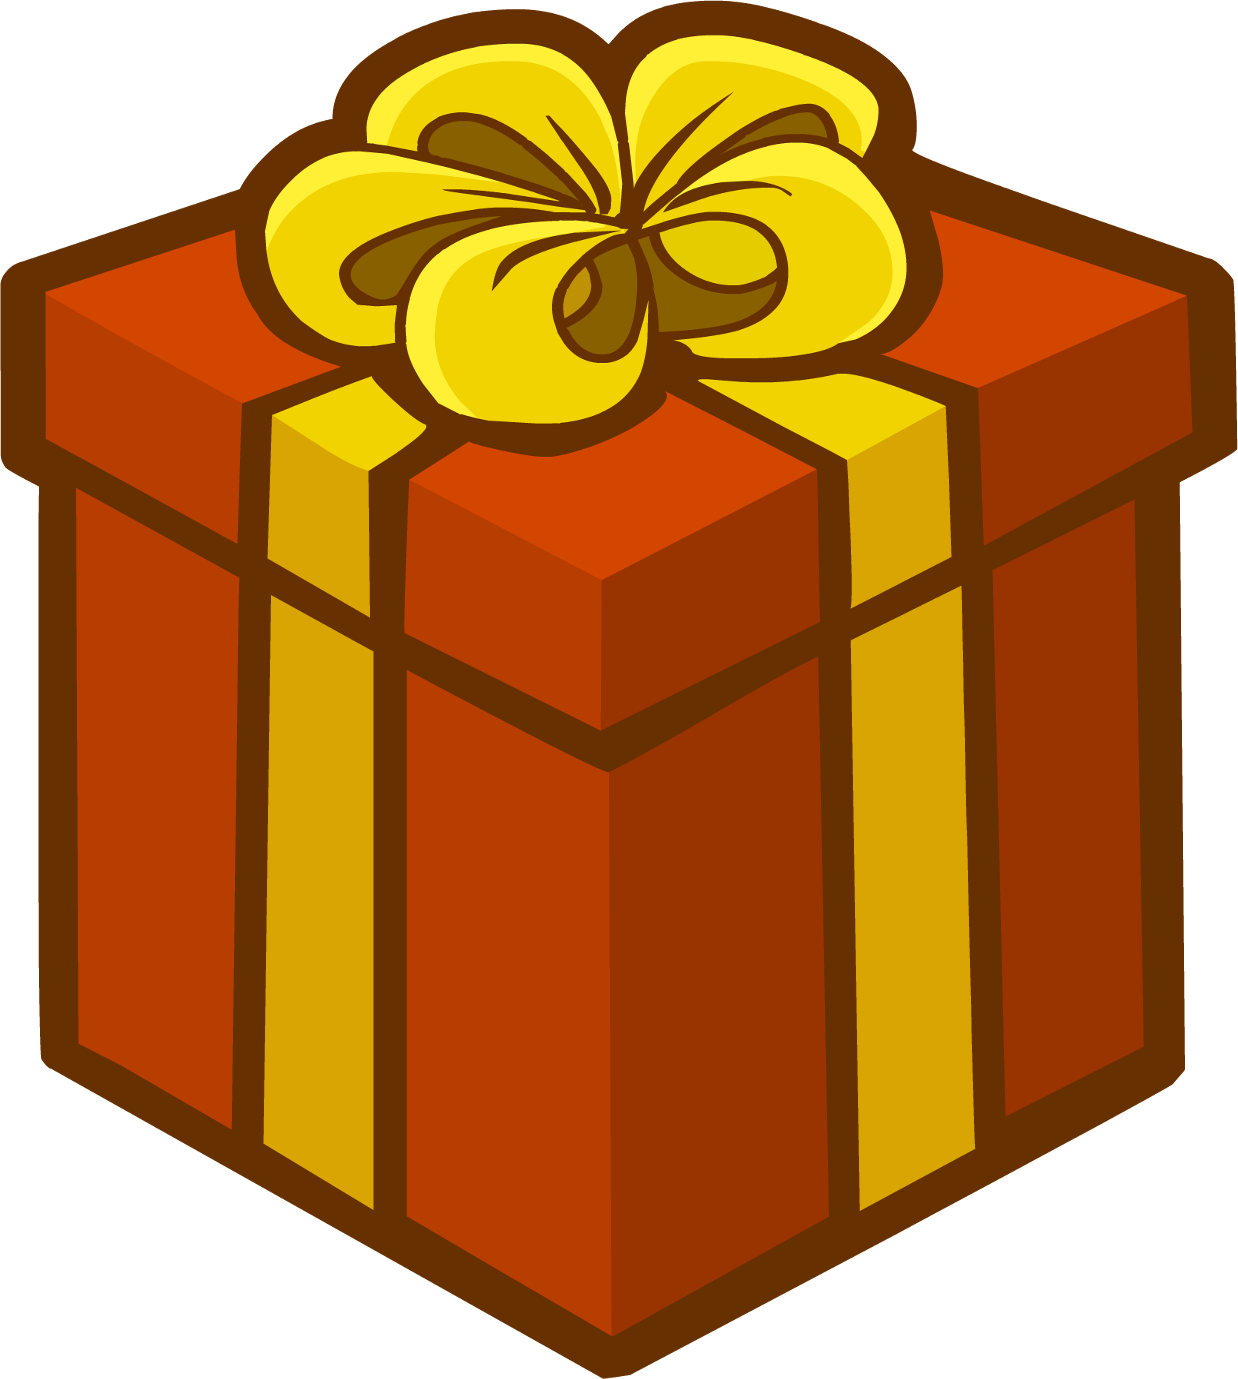 Image - Holiday 2013 Emoticons Gift.png | Club Penguin ...